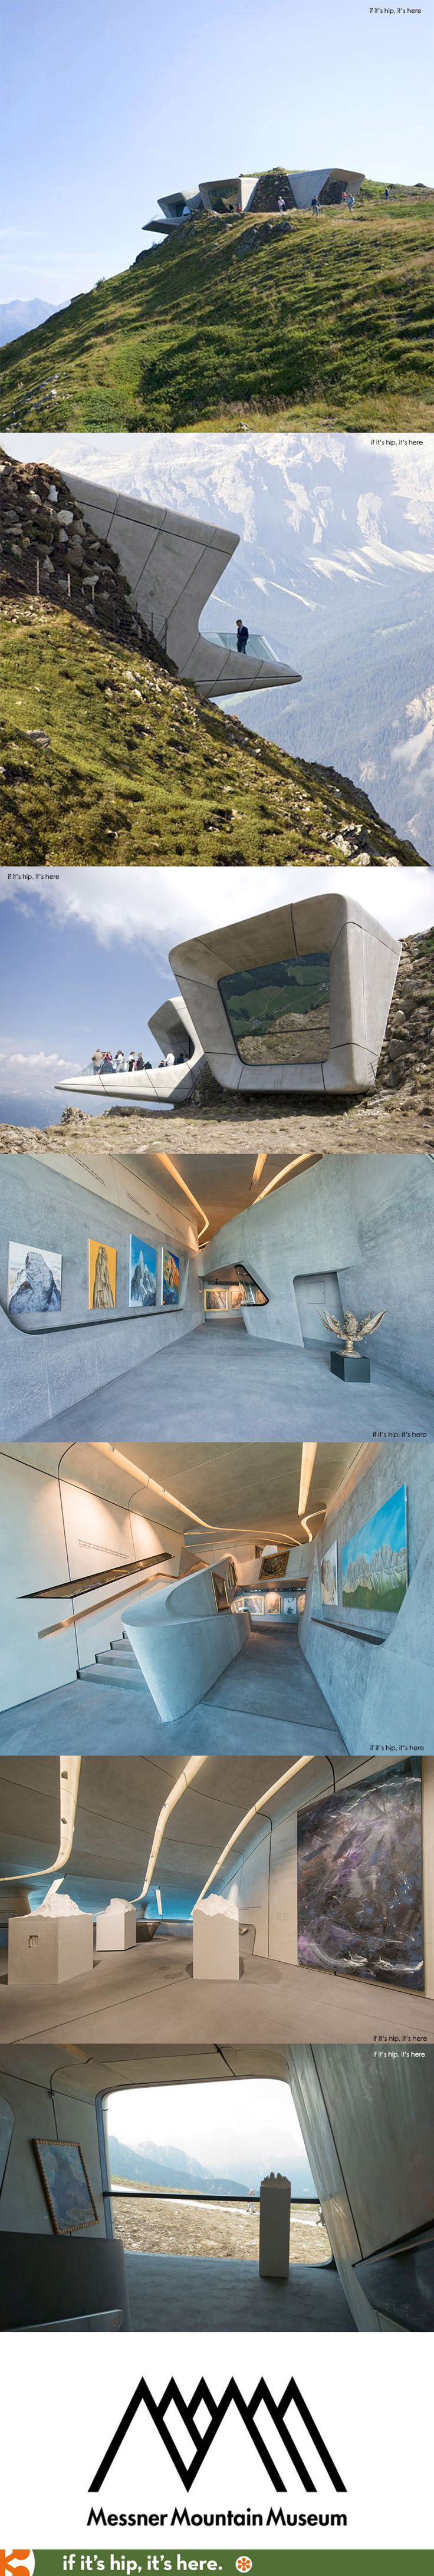 Futuristic architecture by Zaha Hadid: the Messner Mountain Museum easily blends sci-fi architecture and nature. // Futuristische Architektur Zaha Hadids: Das Messner Mountain Museum vereint Sci-fi Architektur gekonnt mit der natürlichen Umgebung. #FutureLiving #futuristic #MessnerMountainMuseum #ZahaHadid #Architecture